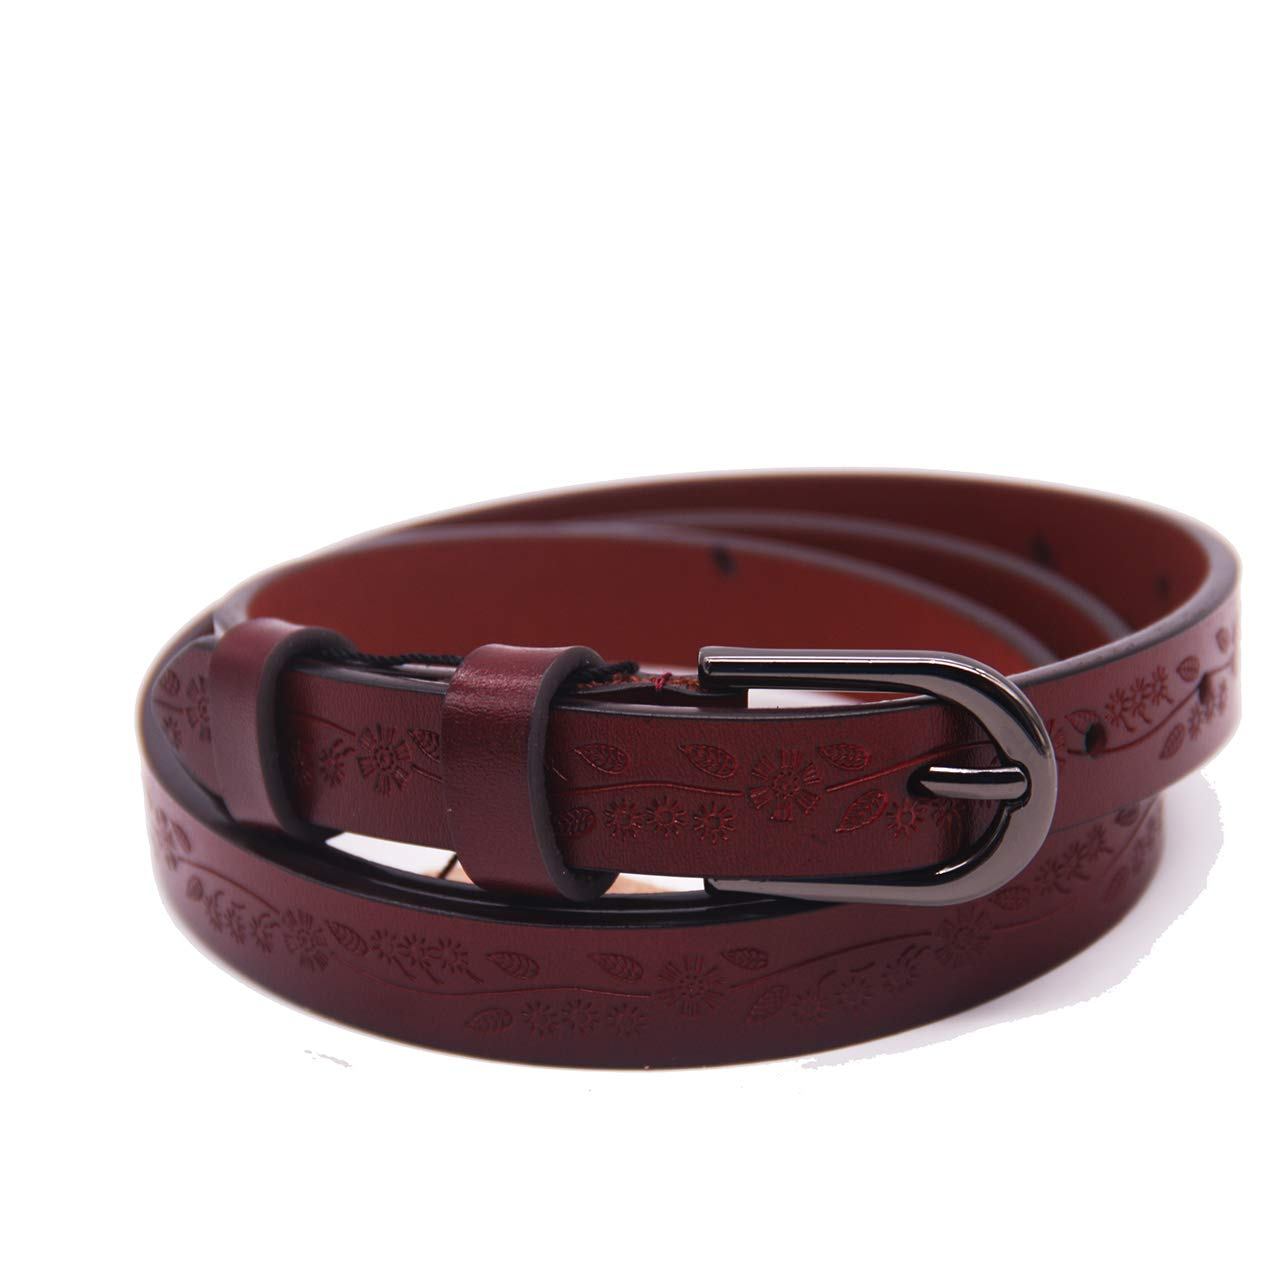 Women Printed Leather Belt for Pants Dress Jeans Waist Belt with Alloy Buckle